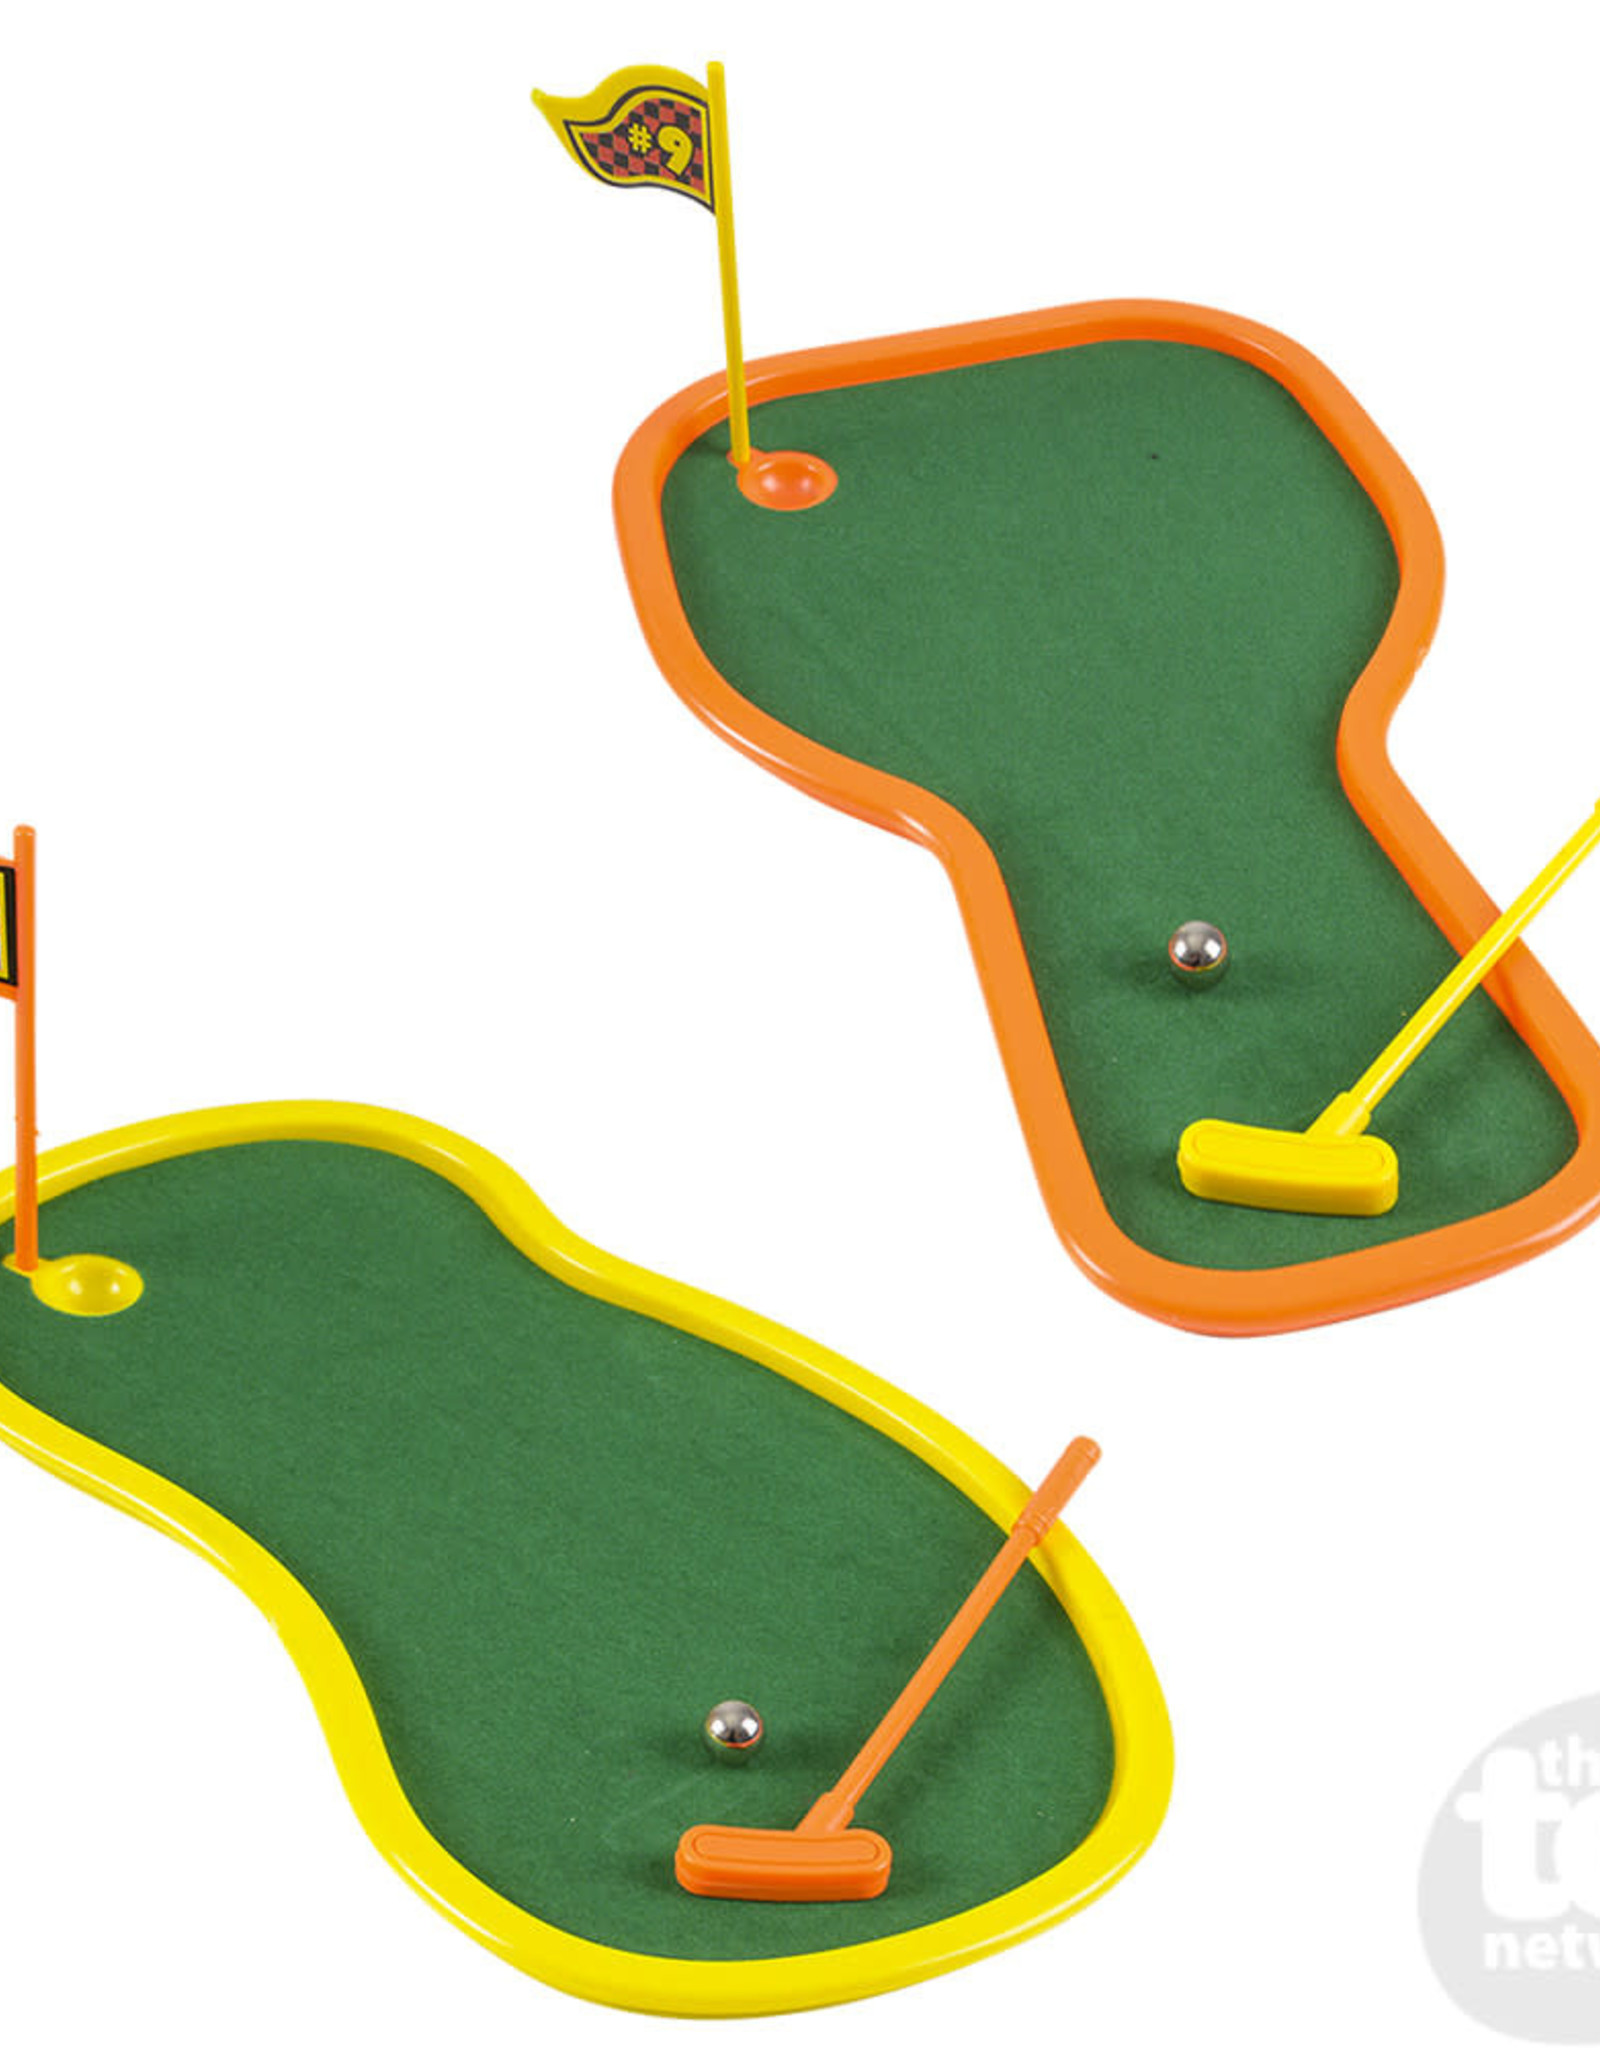 The Toy Network Mini Golf Putting Green